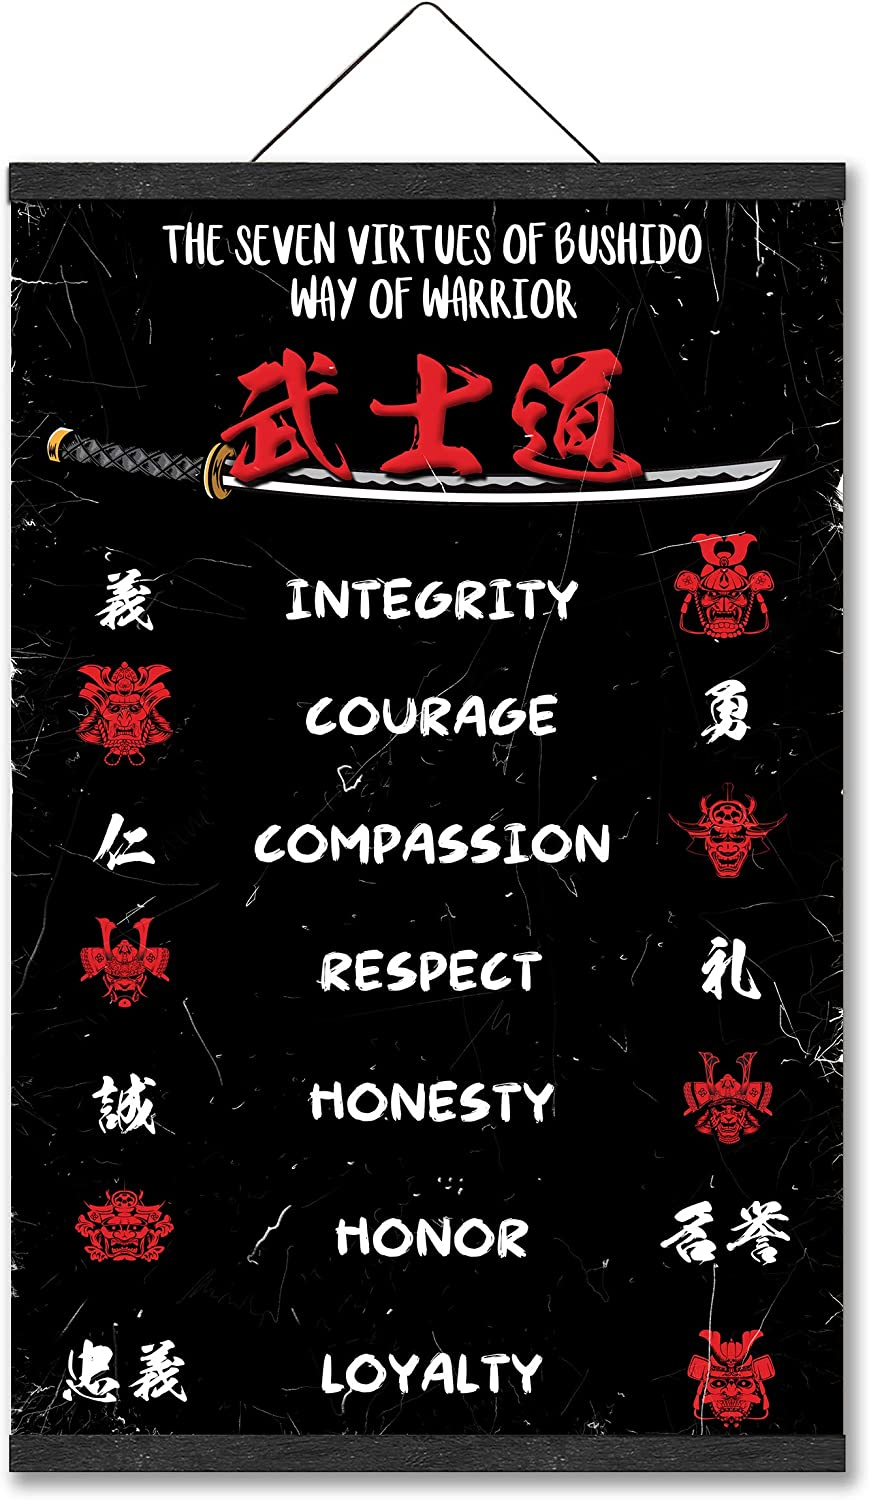 Japanese Samurai Poster Warriros At the price of surprise Quotes price The of 7 Virtues